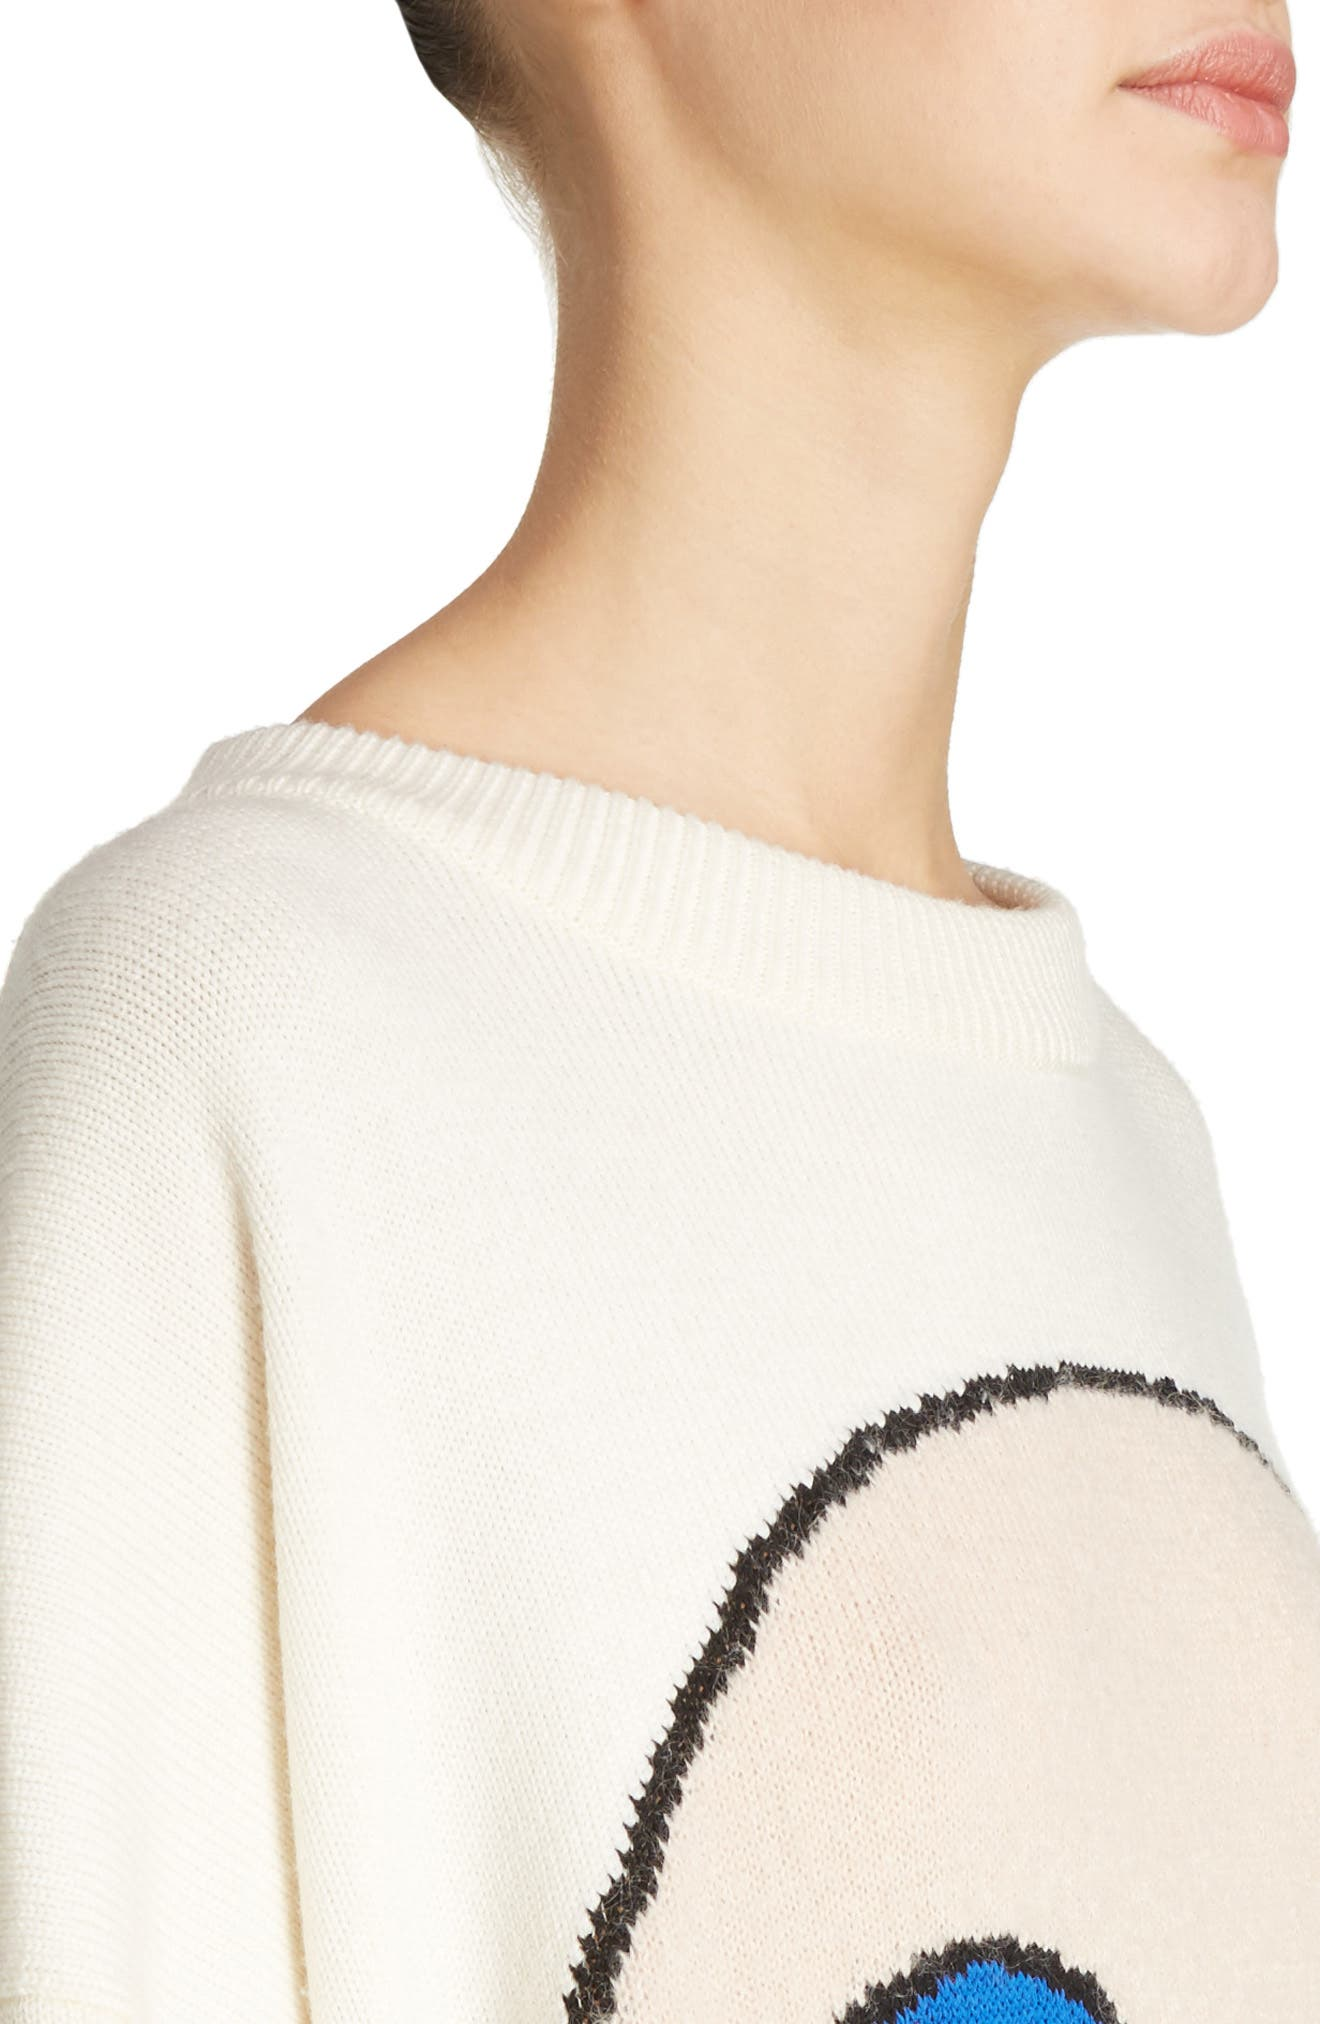 Reisenbauer Intarsia Face Sweater,                             Alternate thumbnail 5, color,                             Natural White